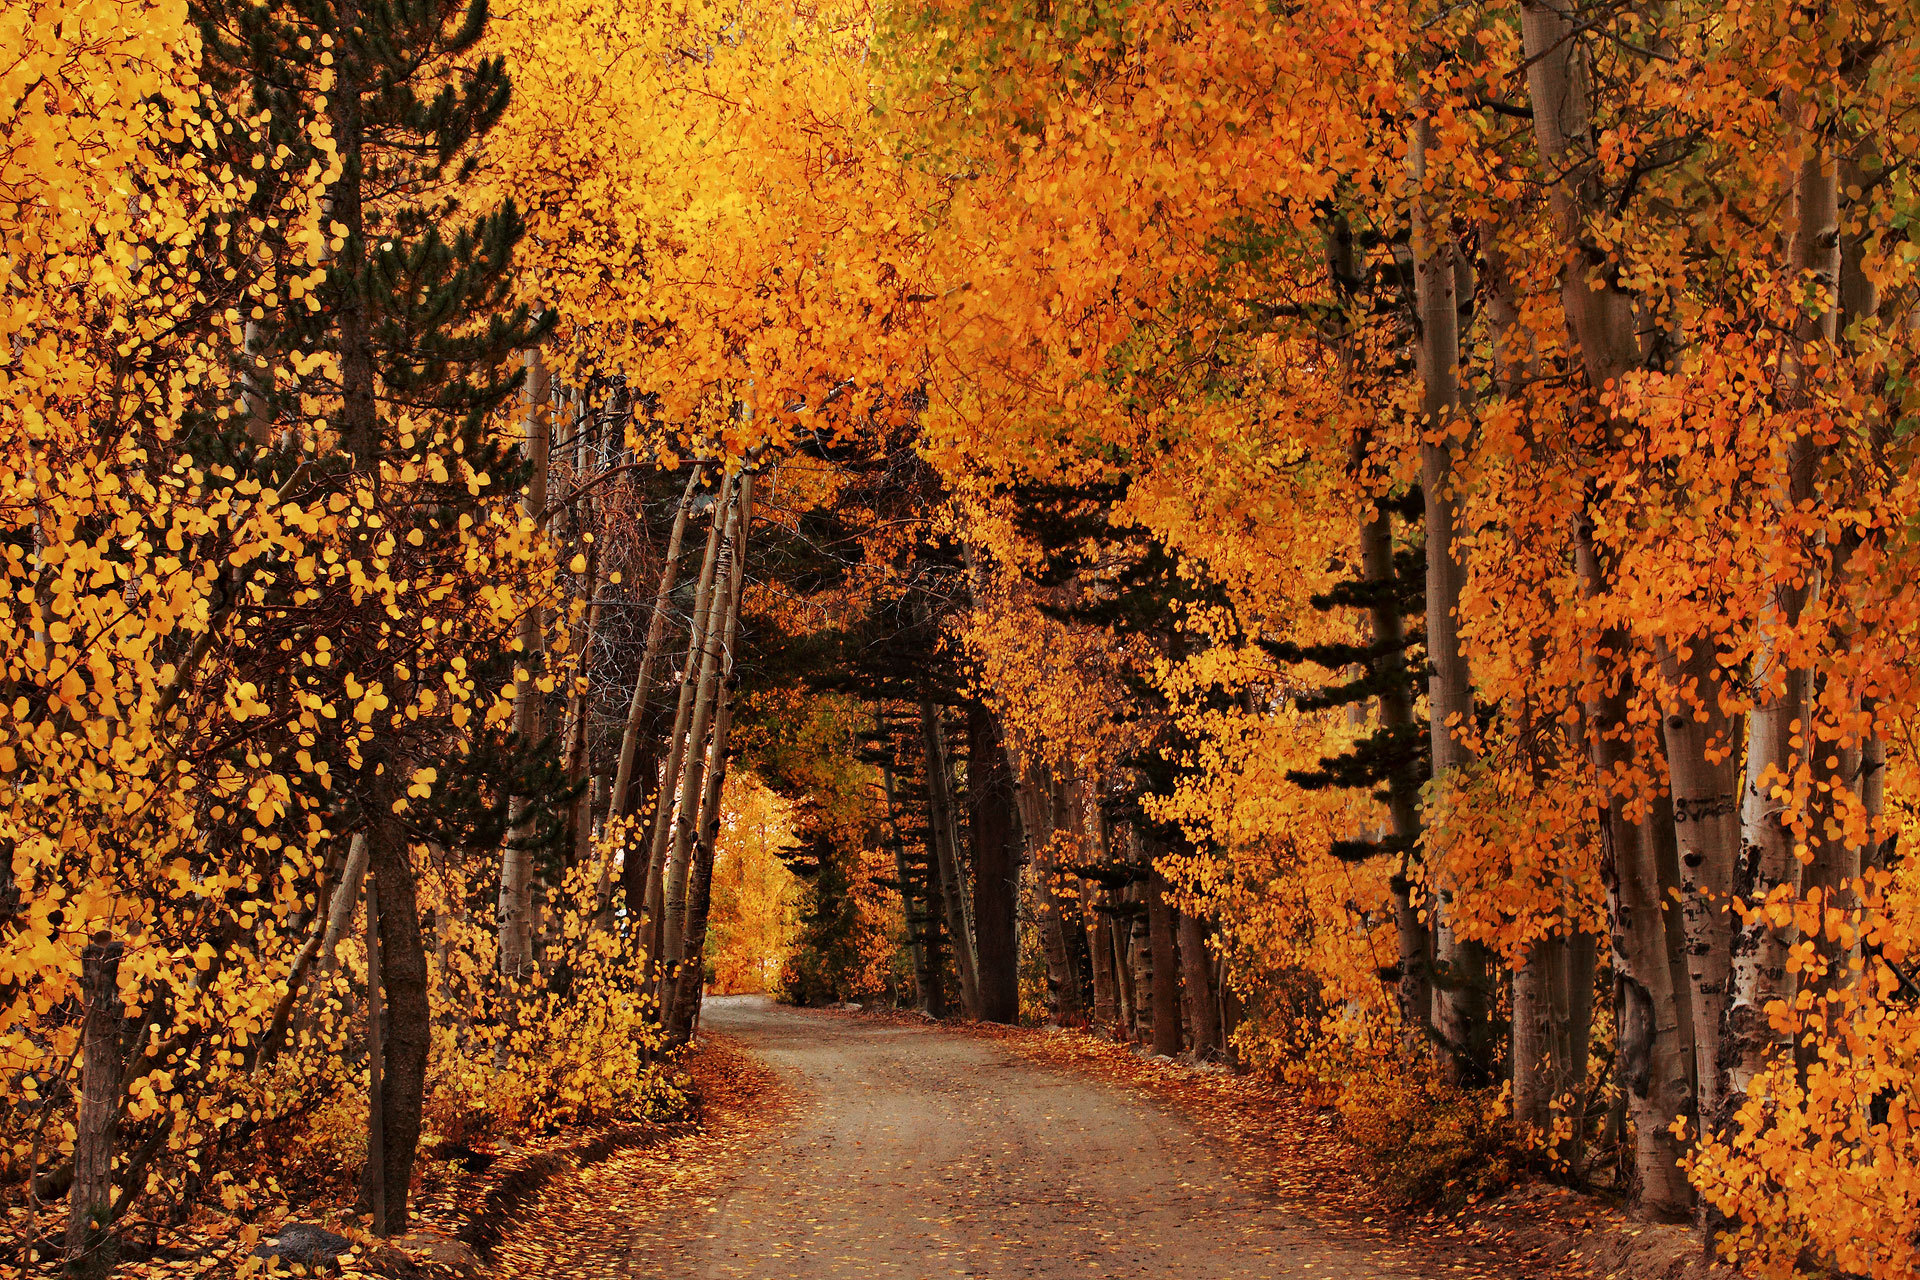 Dirt Road Fall Foliage Forest Road Orange Color 1920x1280